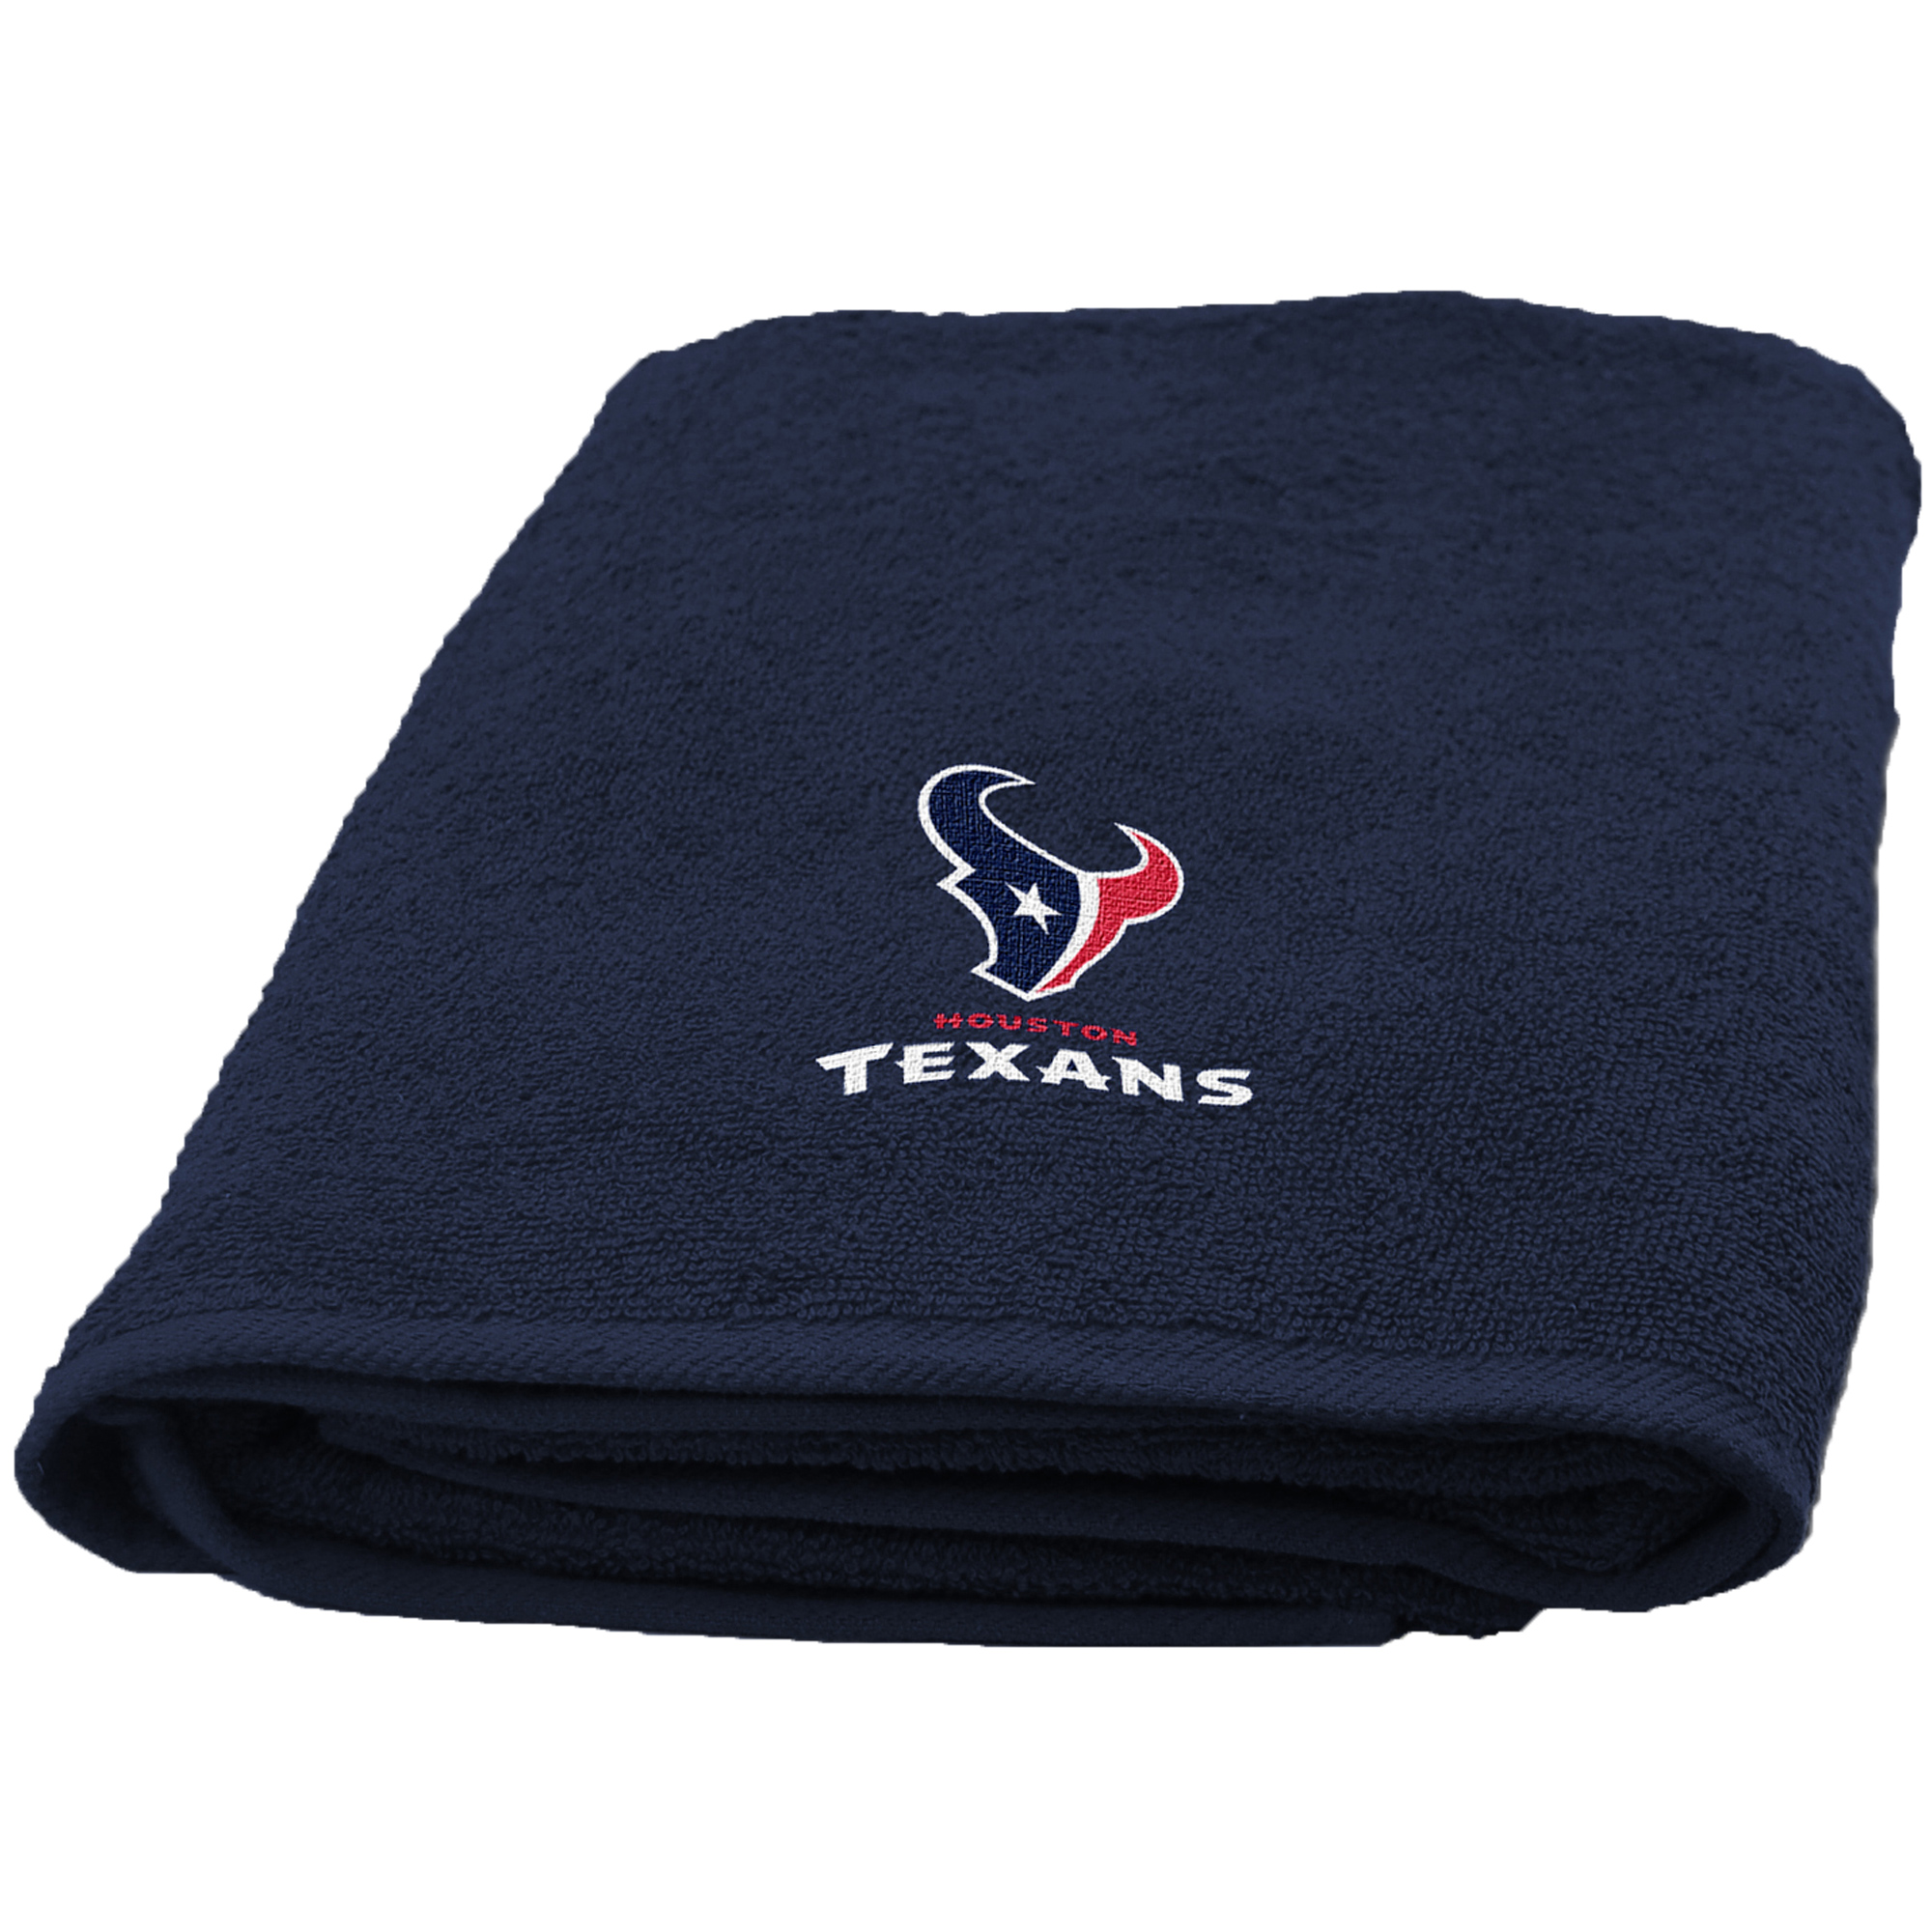 NCAA Houston Texans Bath Towel, 1 Each